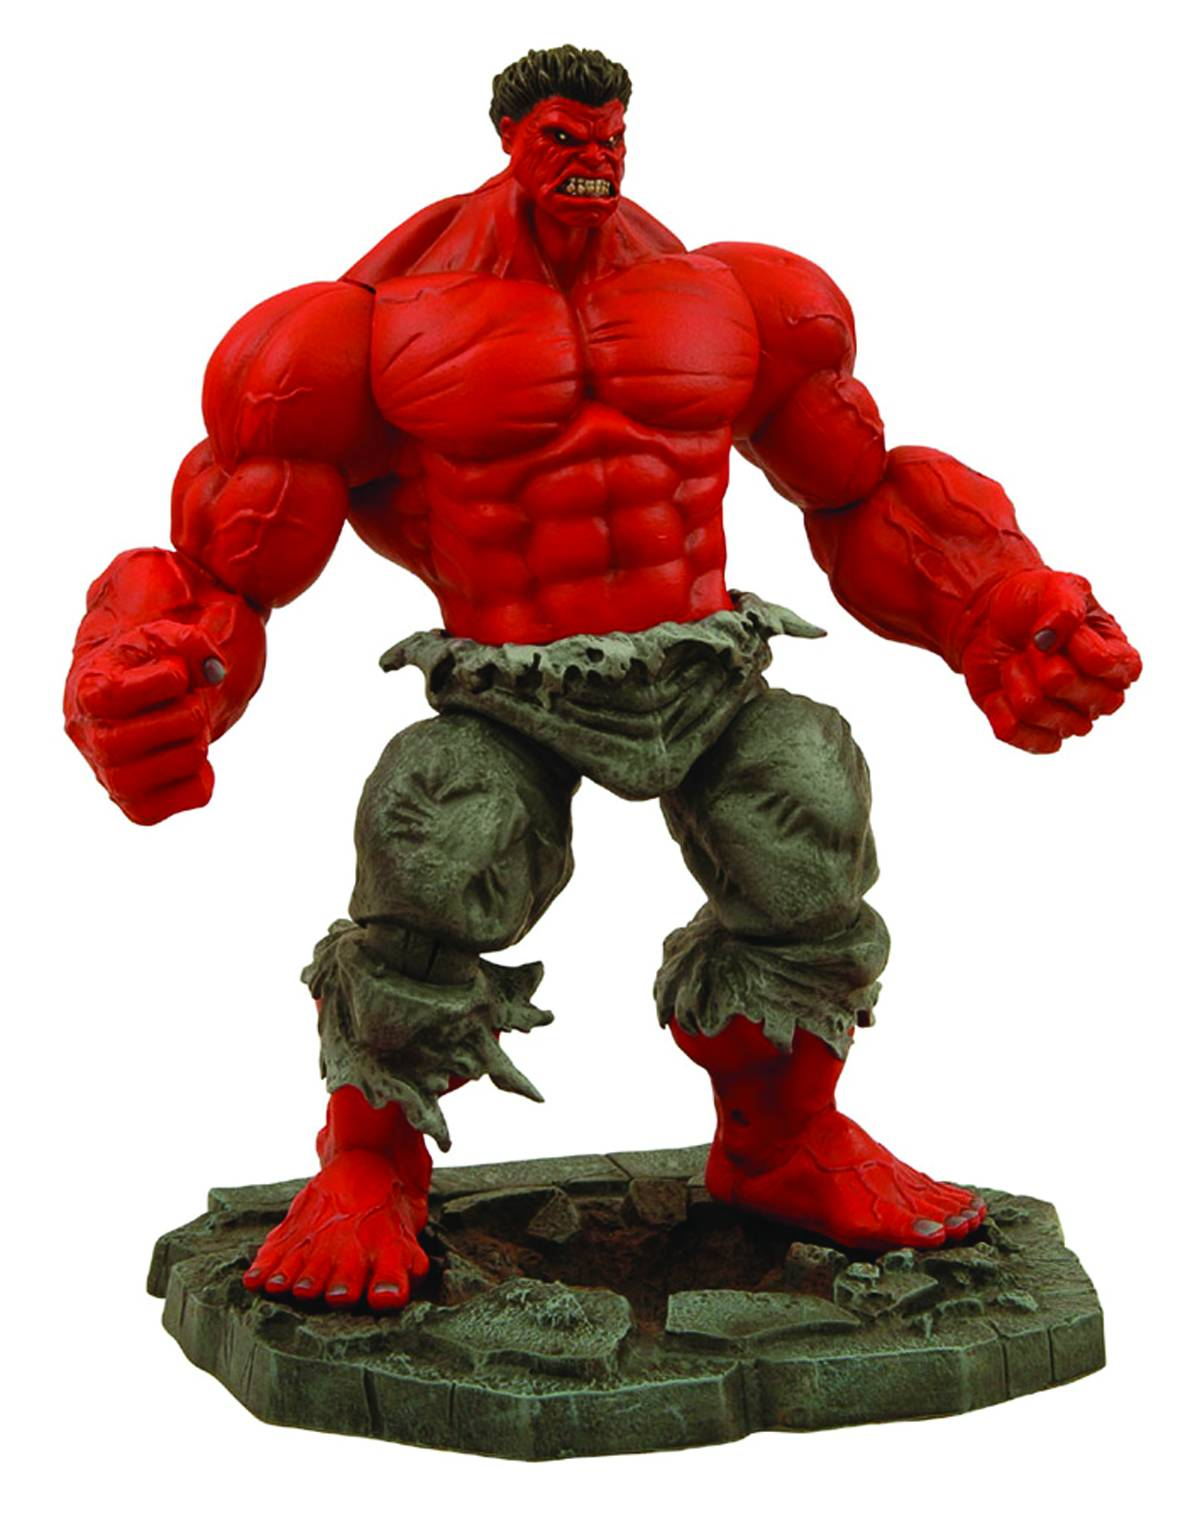 Marvel Comics Red Hulk Action Figure from Diamond Select Toys